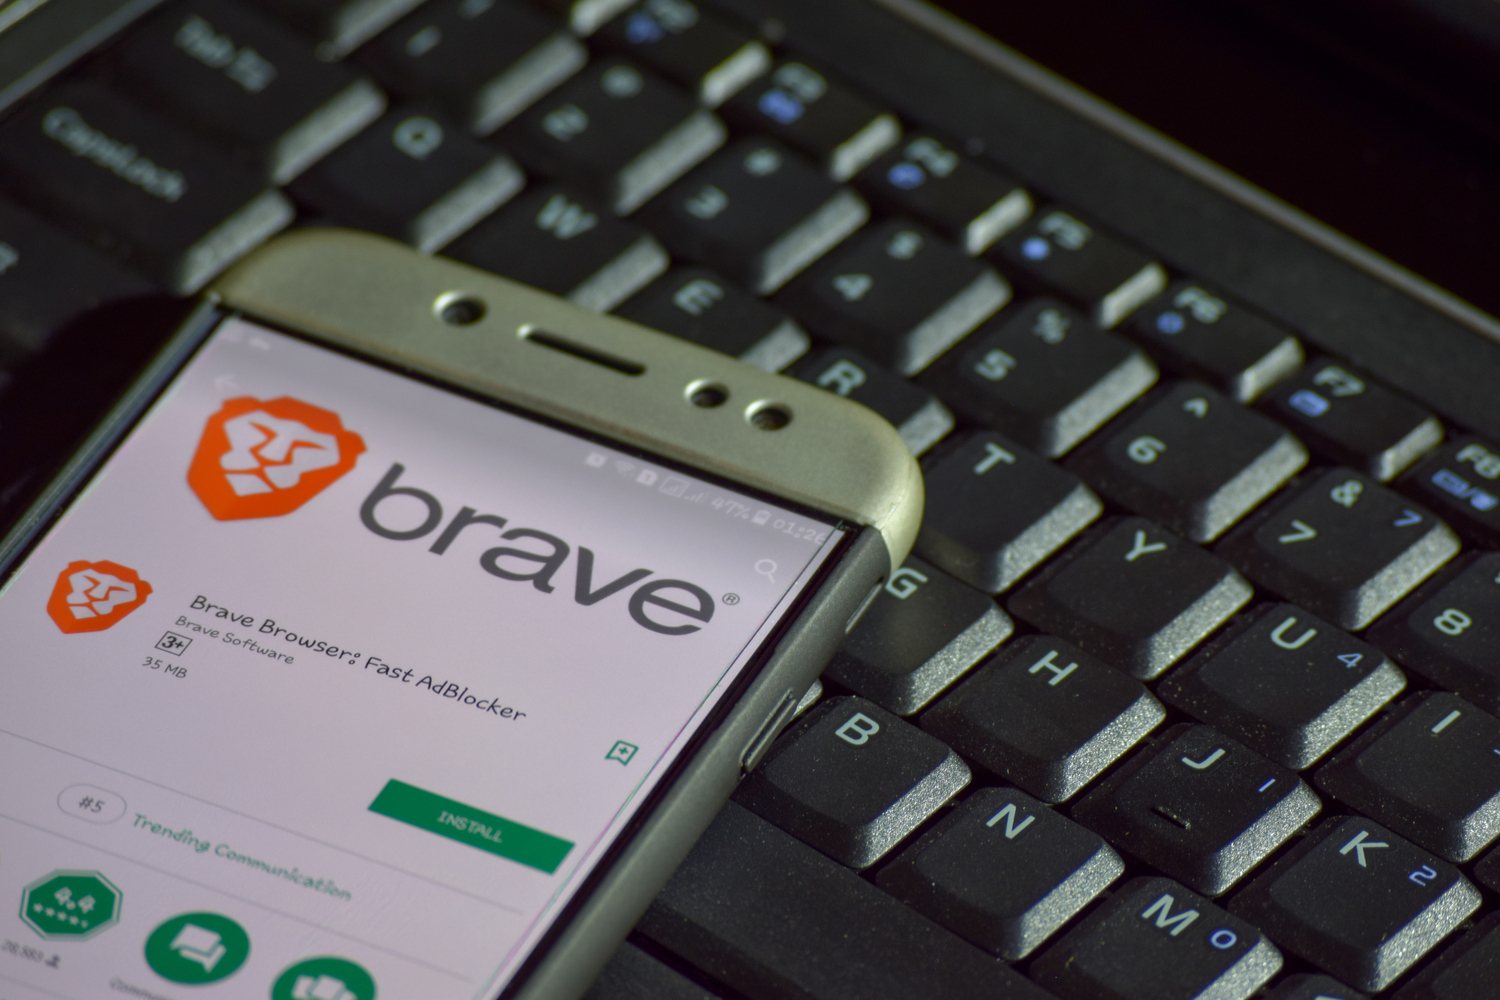 Brave unveils plans for DEX aggregator and NFT wallet in next browser